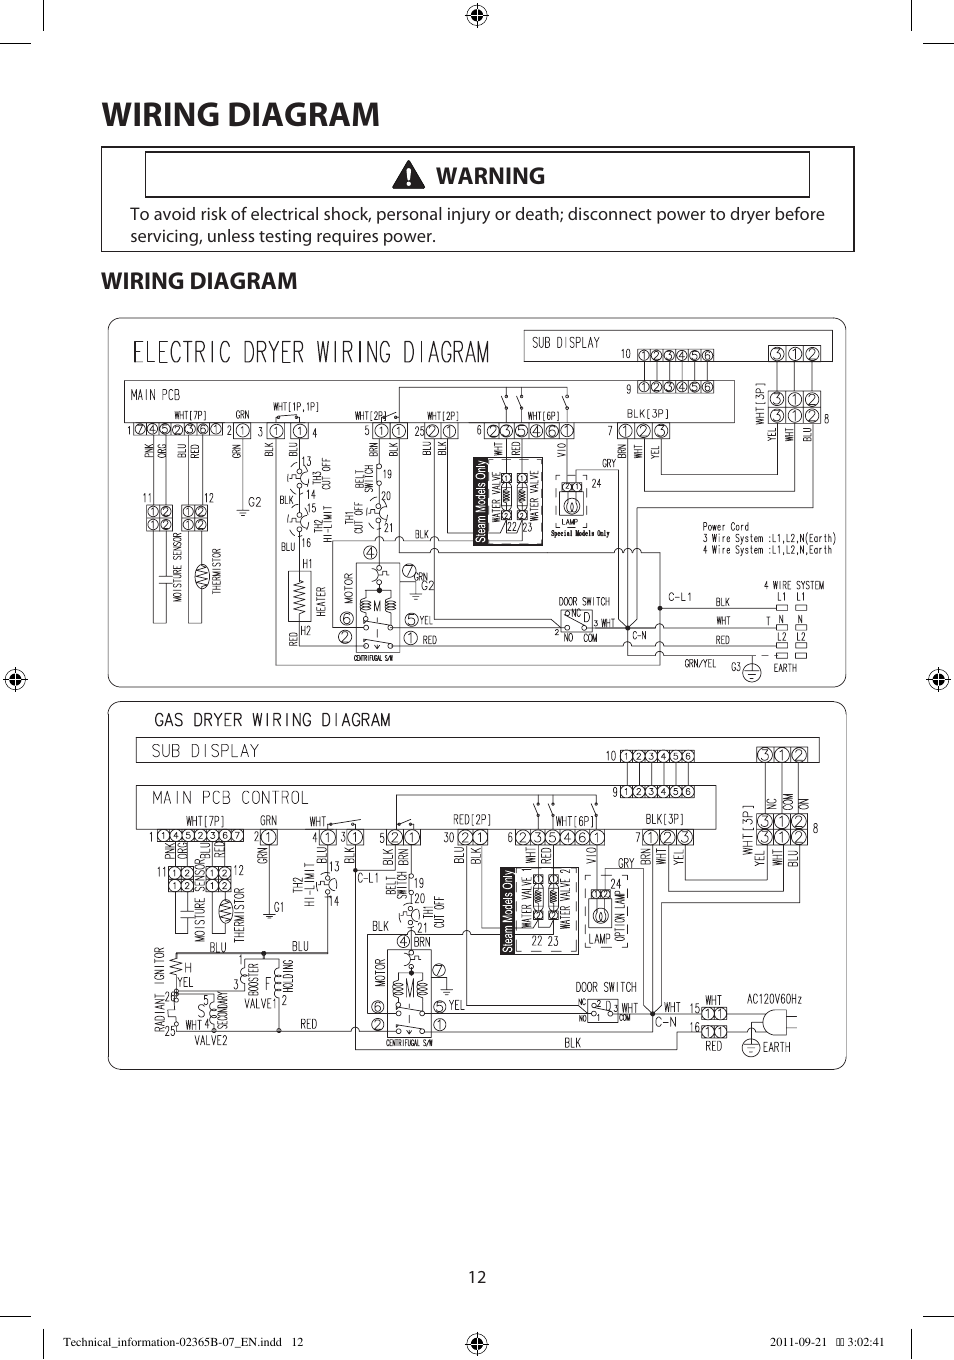 Wiring    diagram     Warning   Samsung DV448AEPXAA User Manual